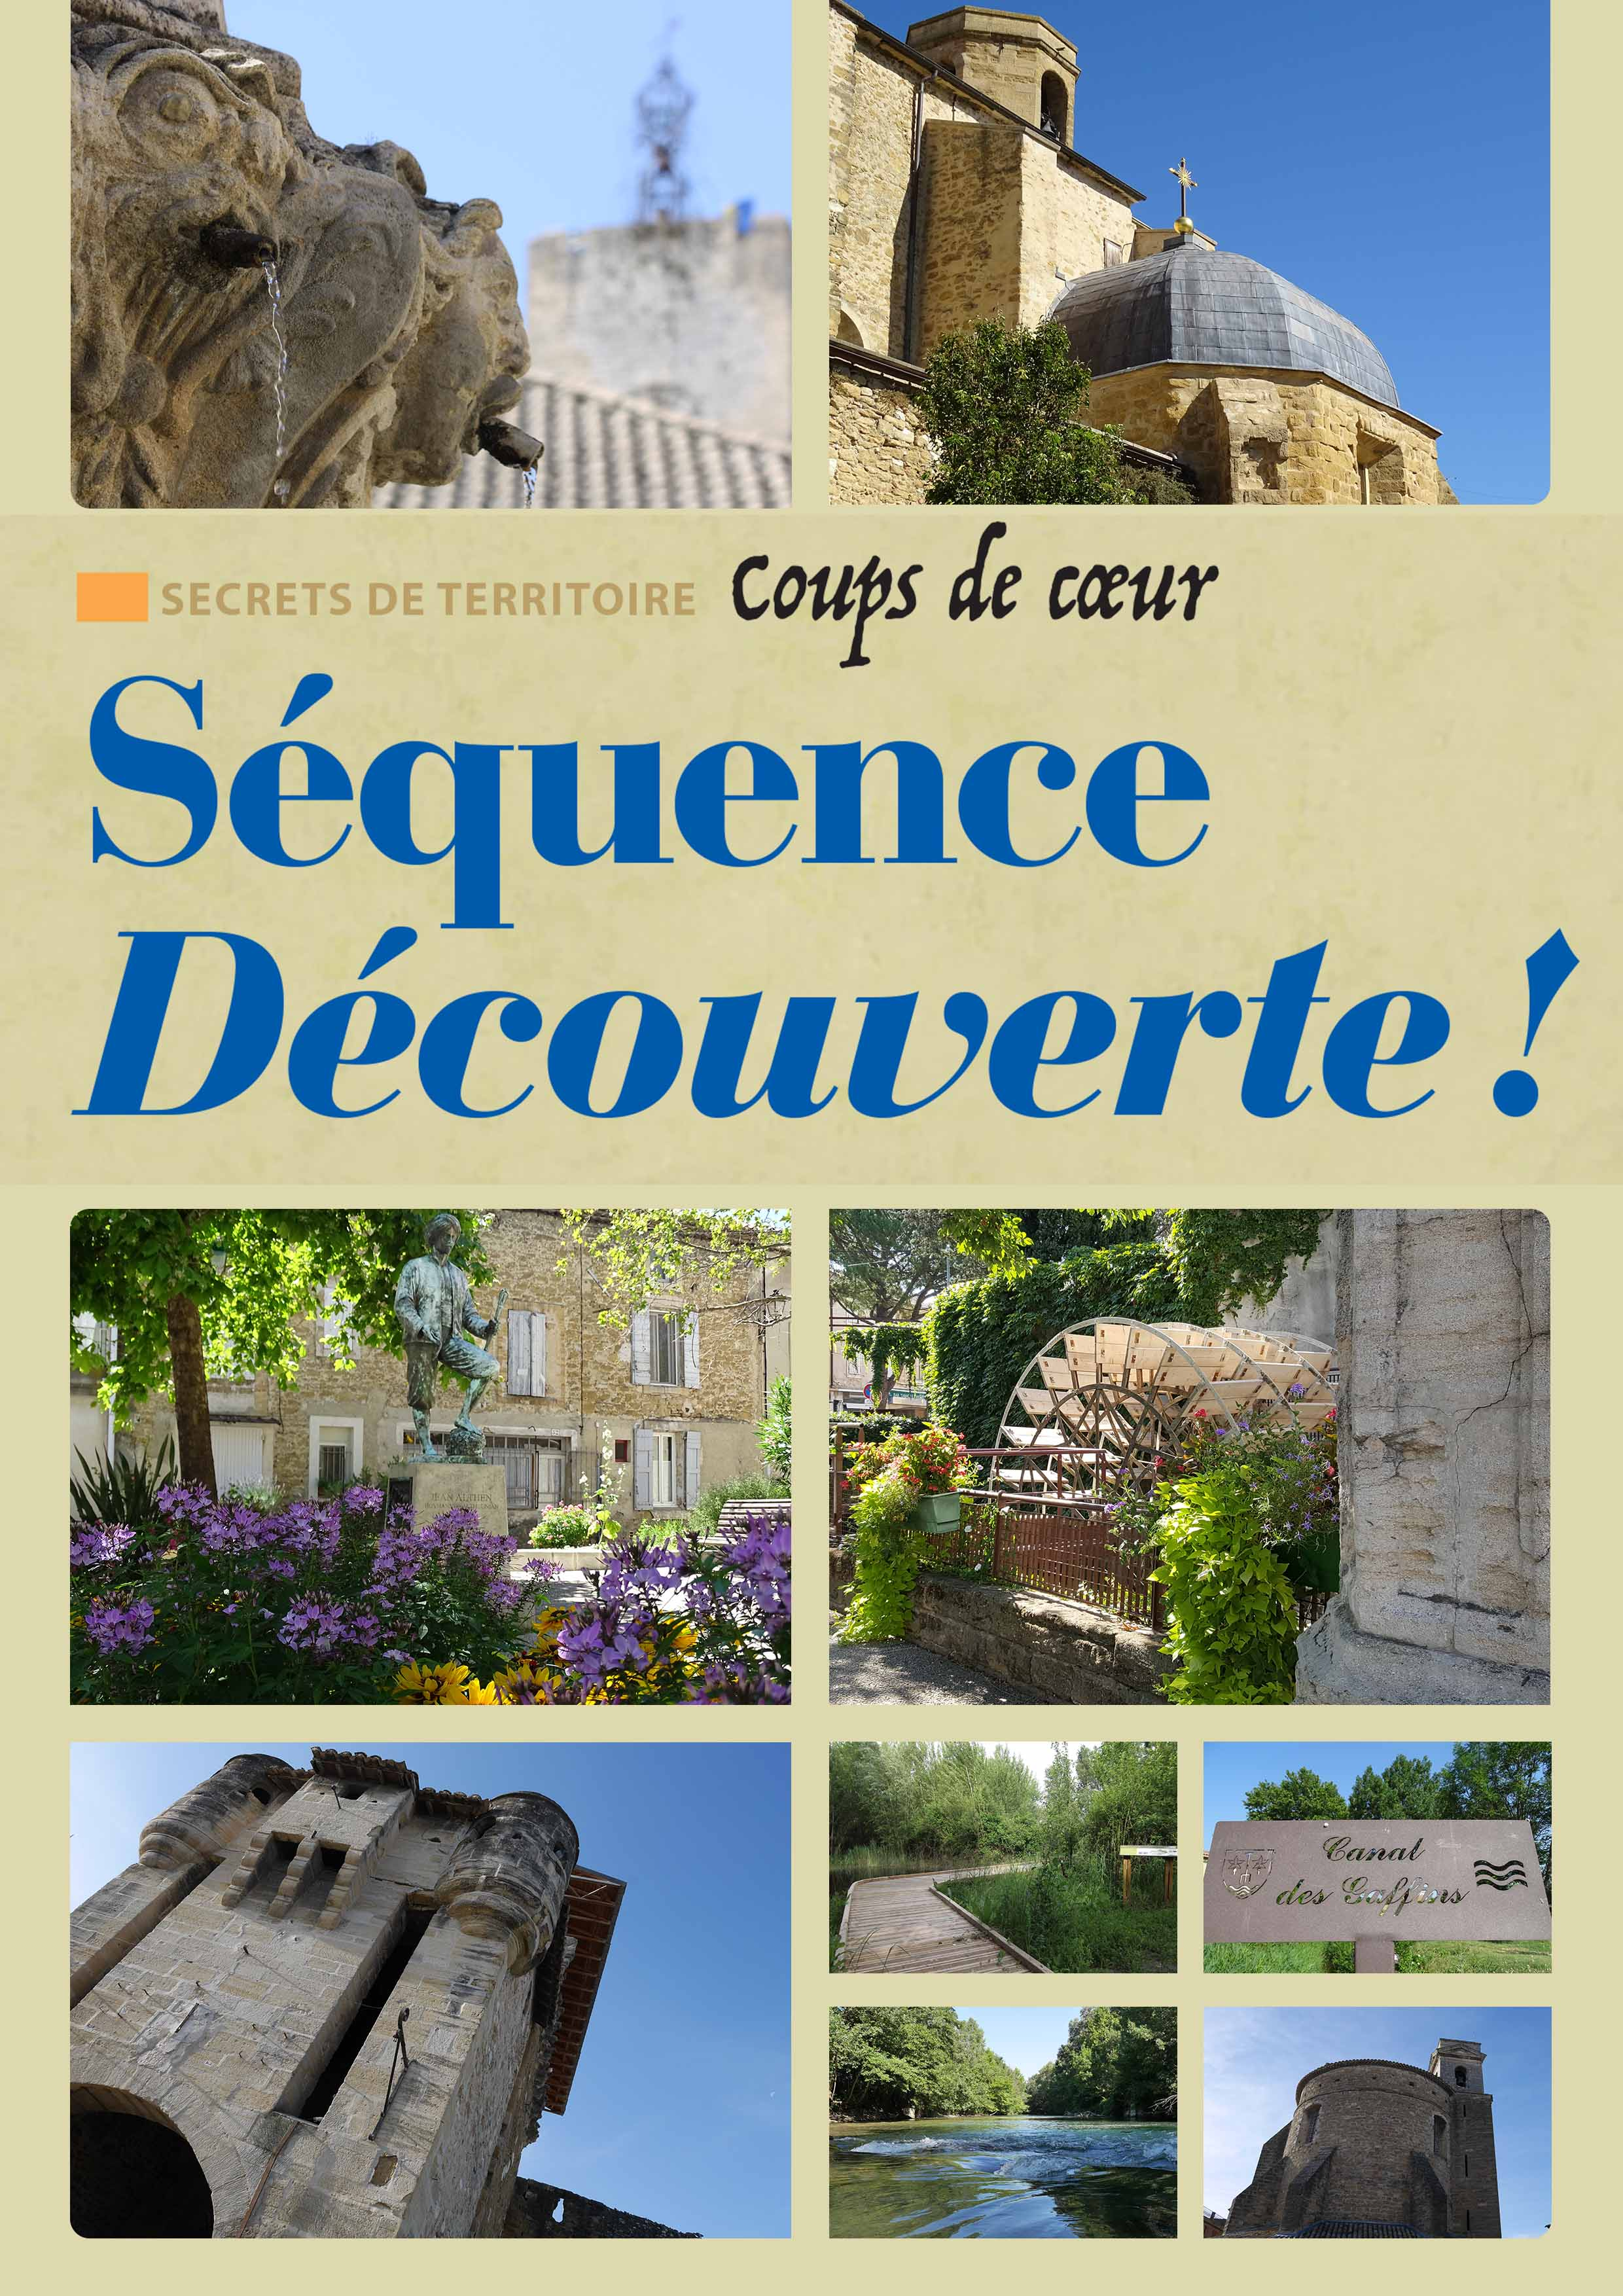 SequenceDecouverte